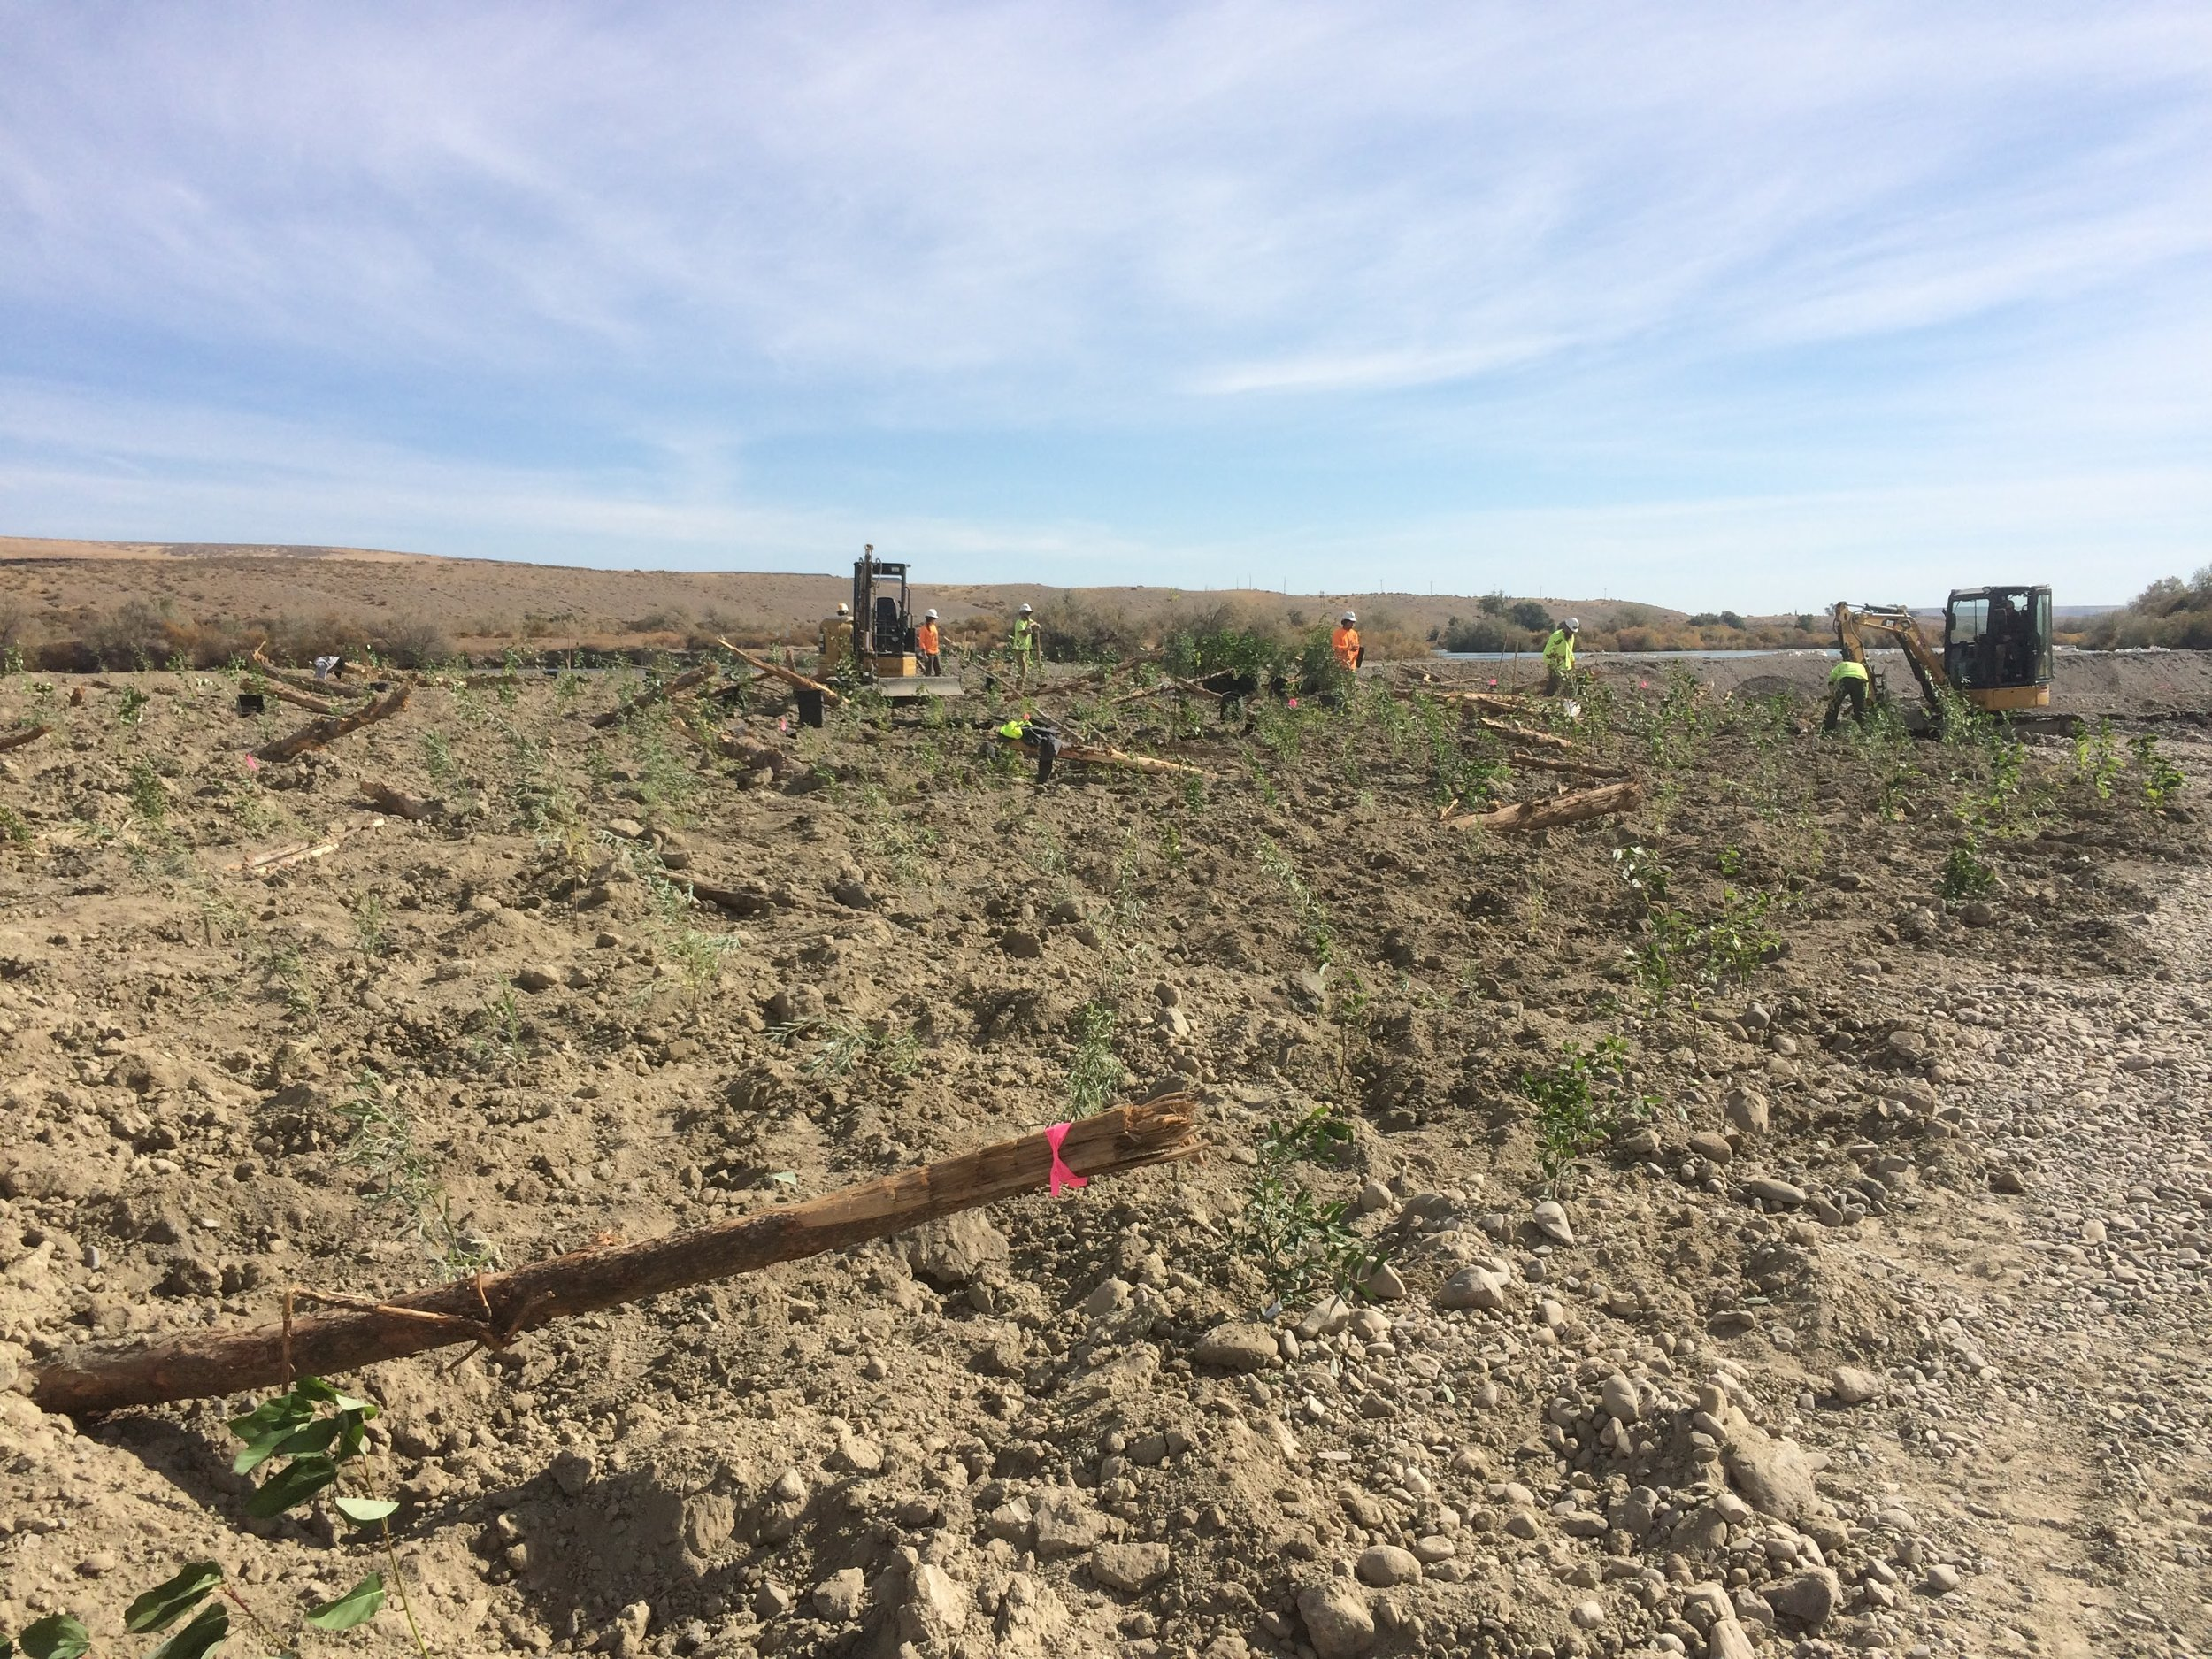 Crews worked to plant around pre-installed floodplain roughness - logs keyed into the created floodplain for stability and microtopography.